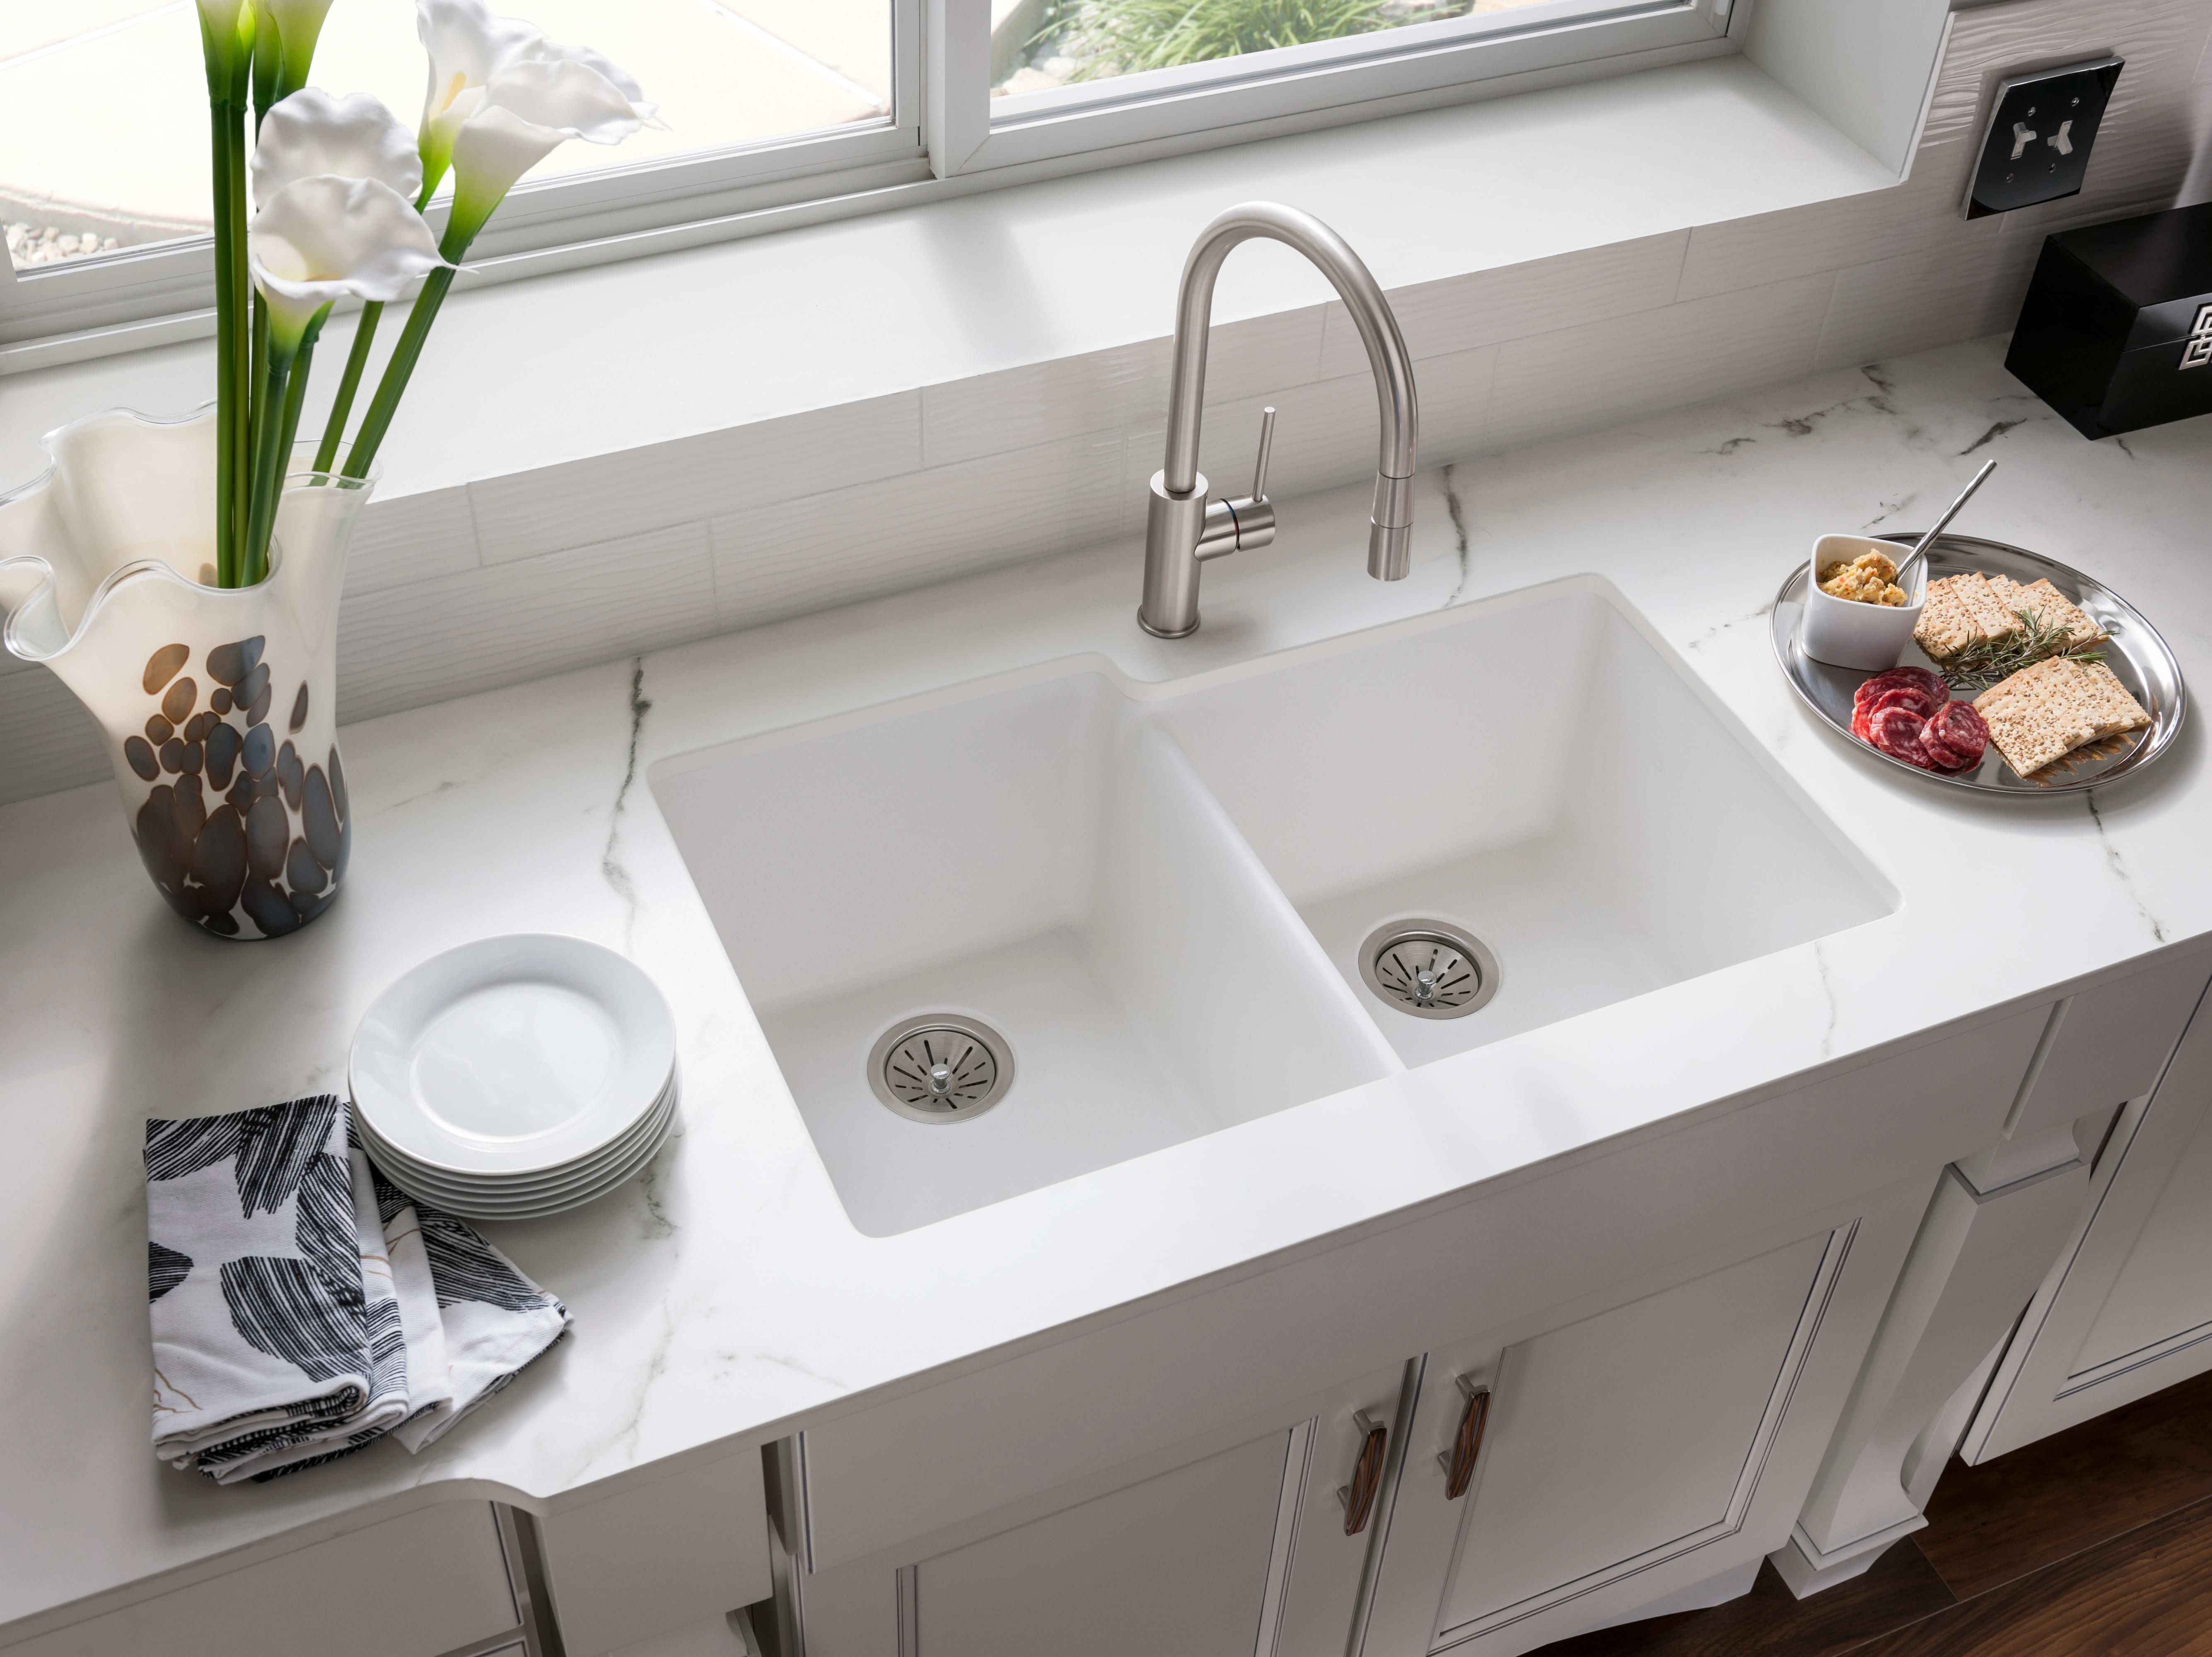 Modern kitchen sinks are not just about functions, but also looks ...